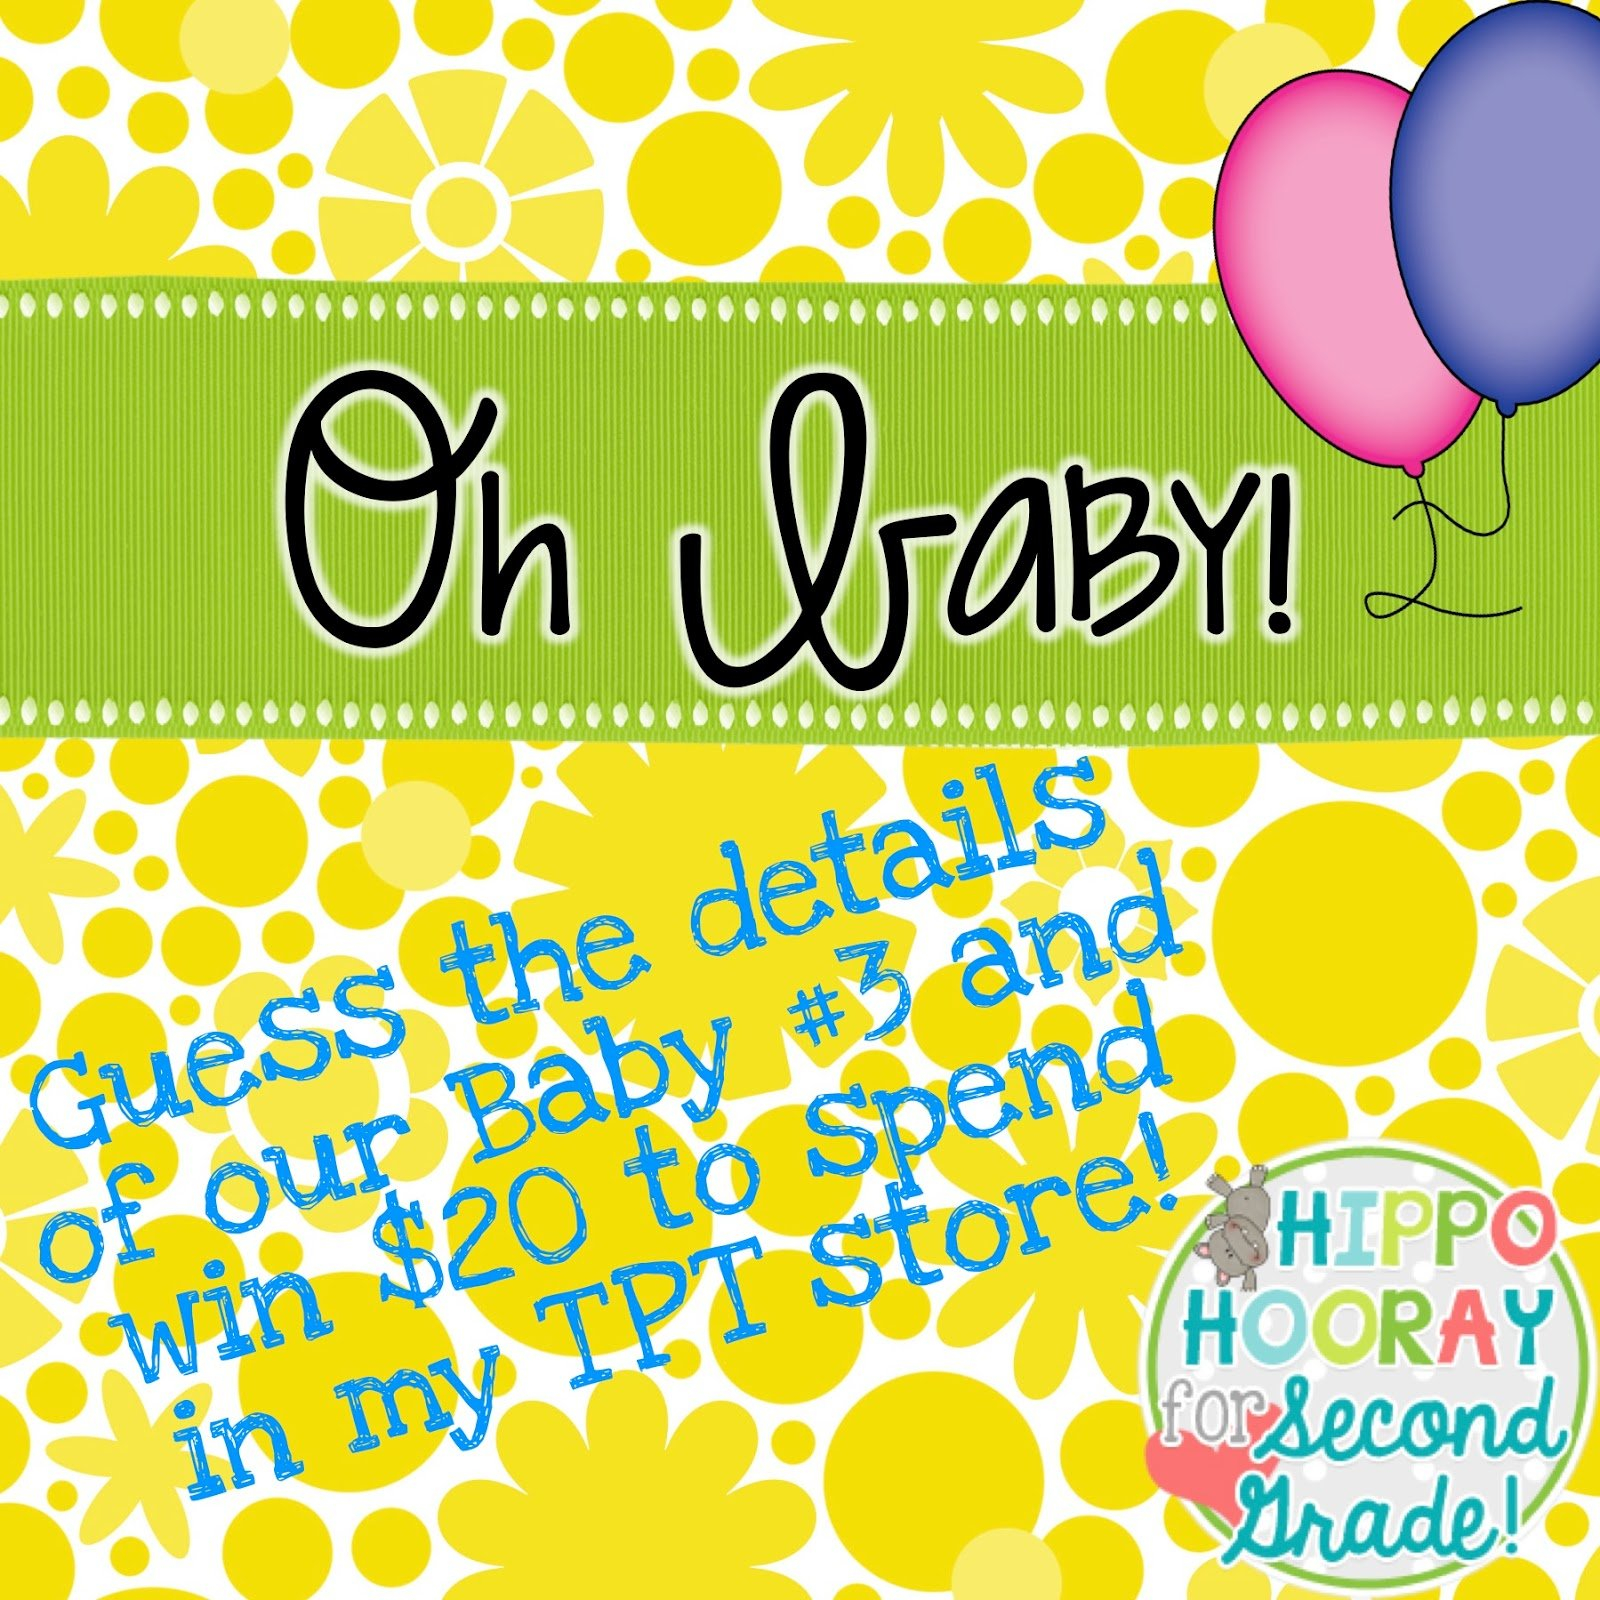 Oh Baby! It's Giveaway Time! – Hippo Hooray For Second Grade! Guess Baby Birth Details